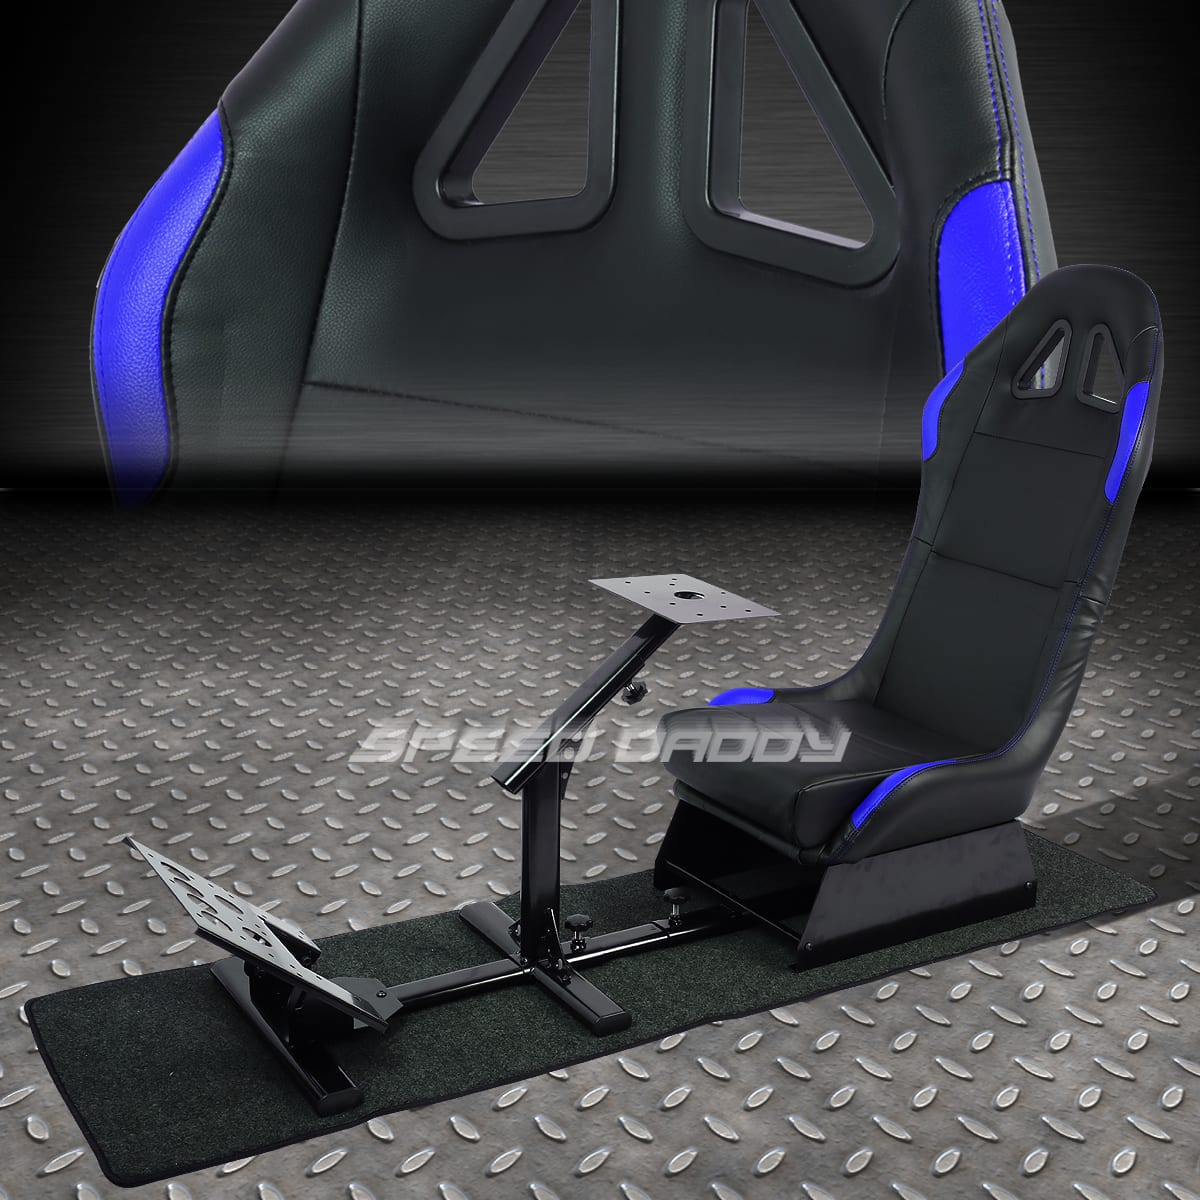 Cockpit driving simulator racing seat gaming chair w/gear pedals mount kit $248.88